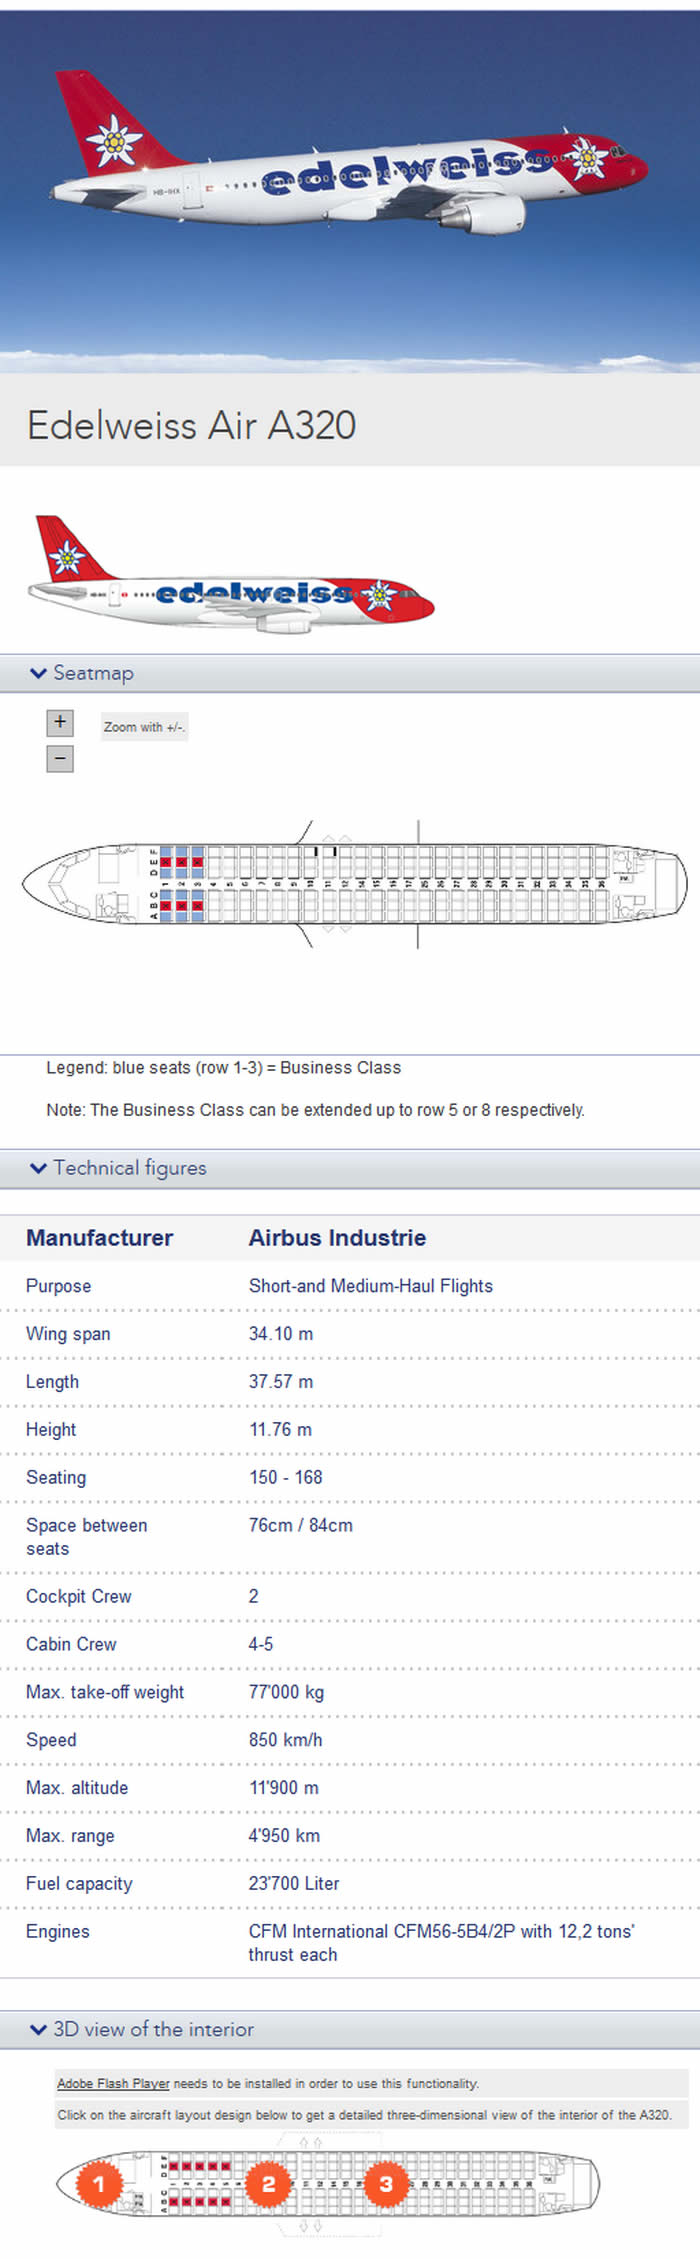 EDELWEISS AIRLINES AIRBUS A320 AIRCRAFT SEATING CHART